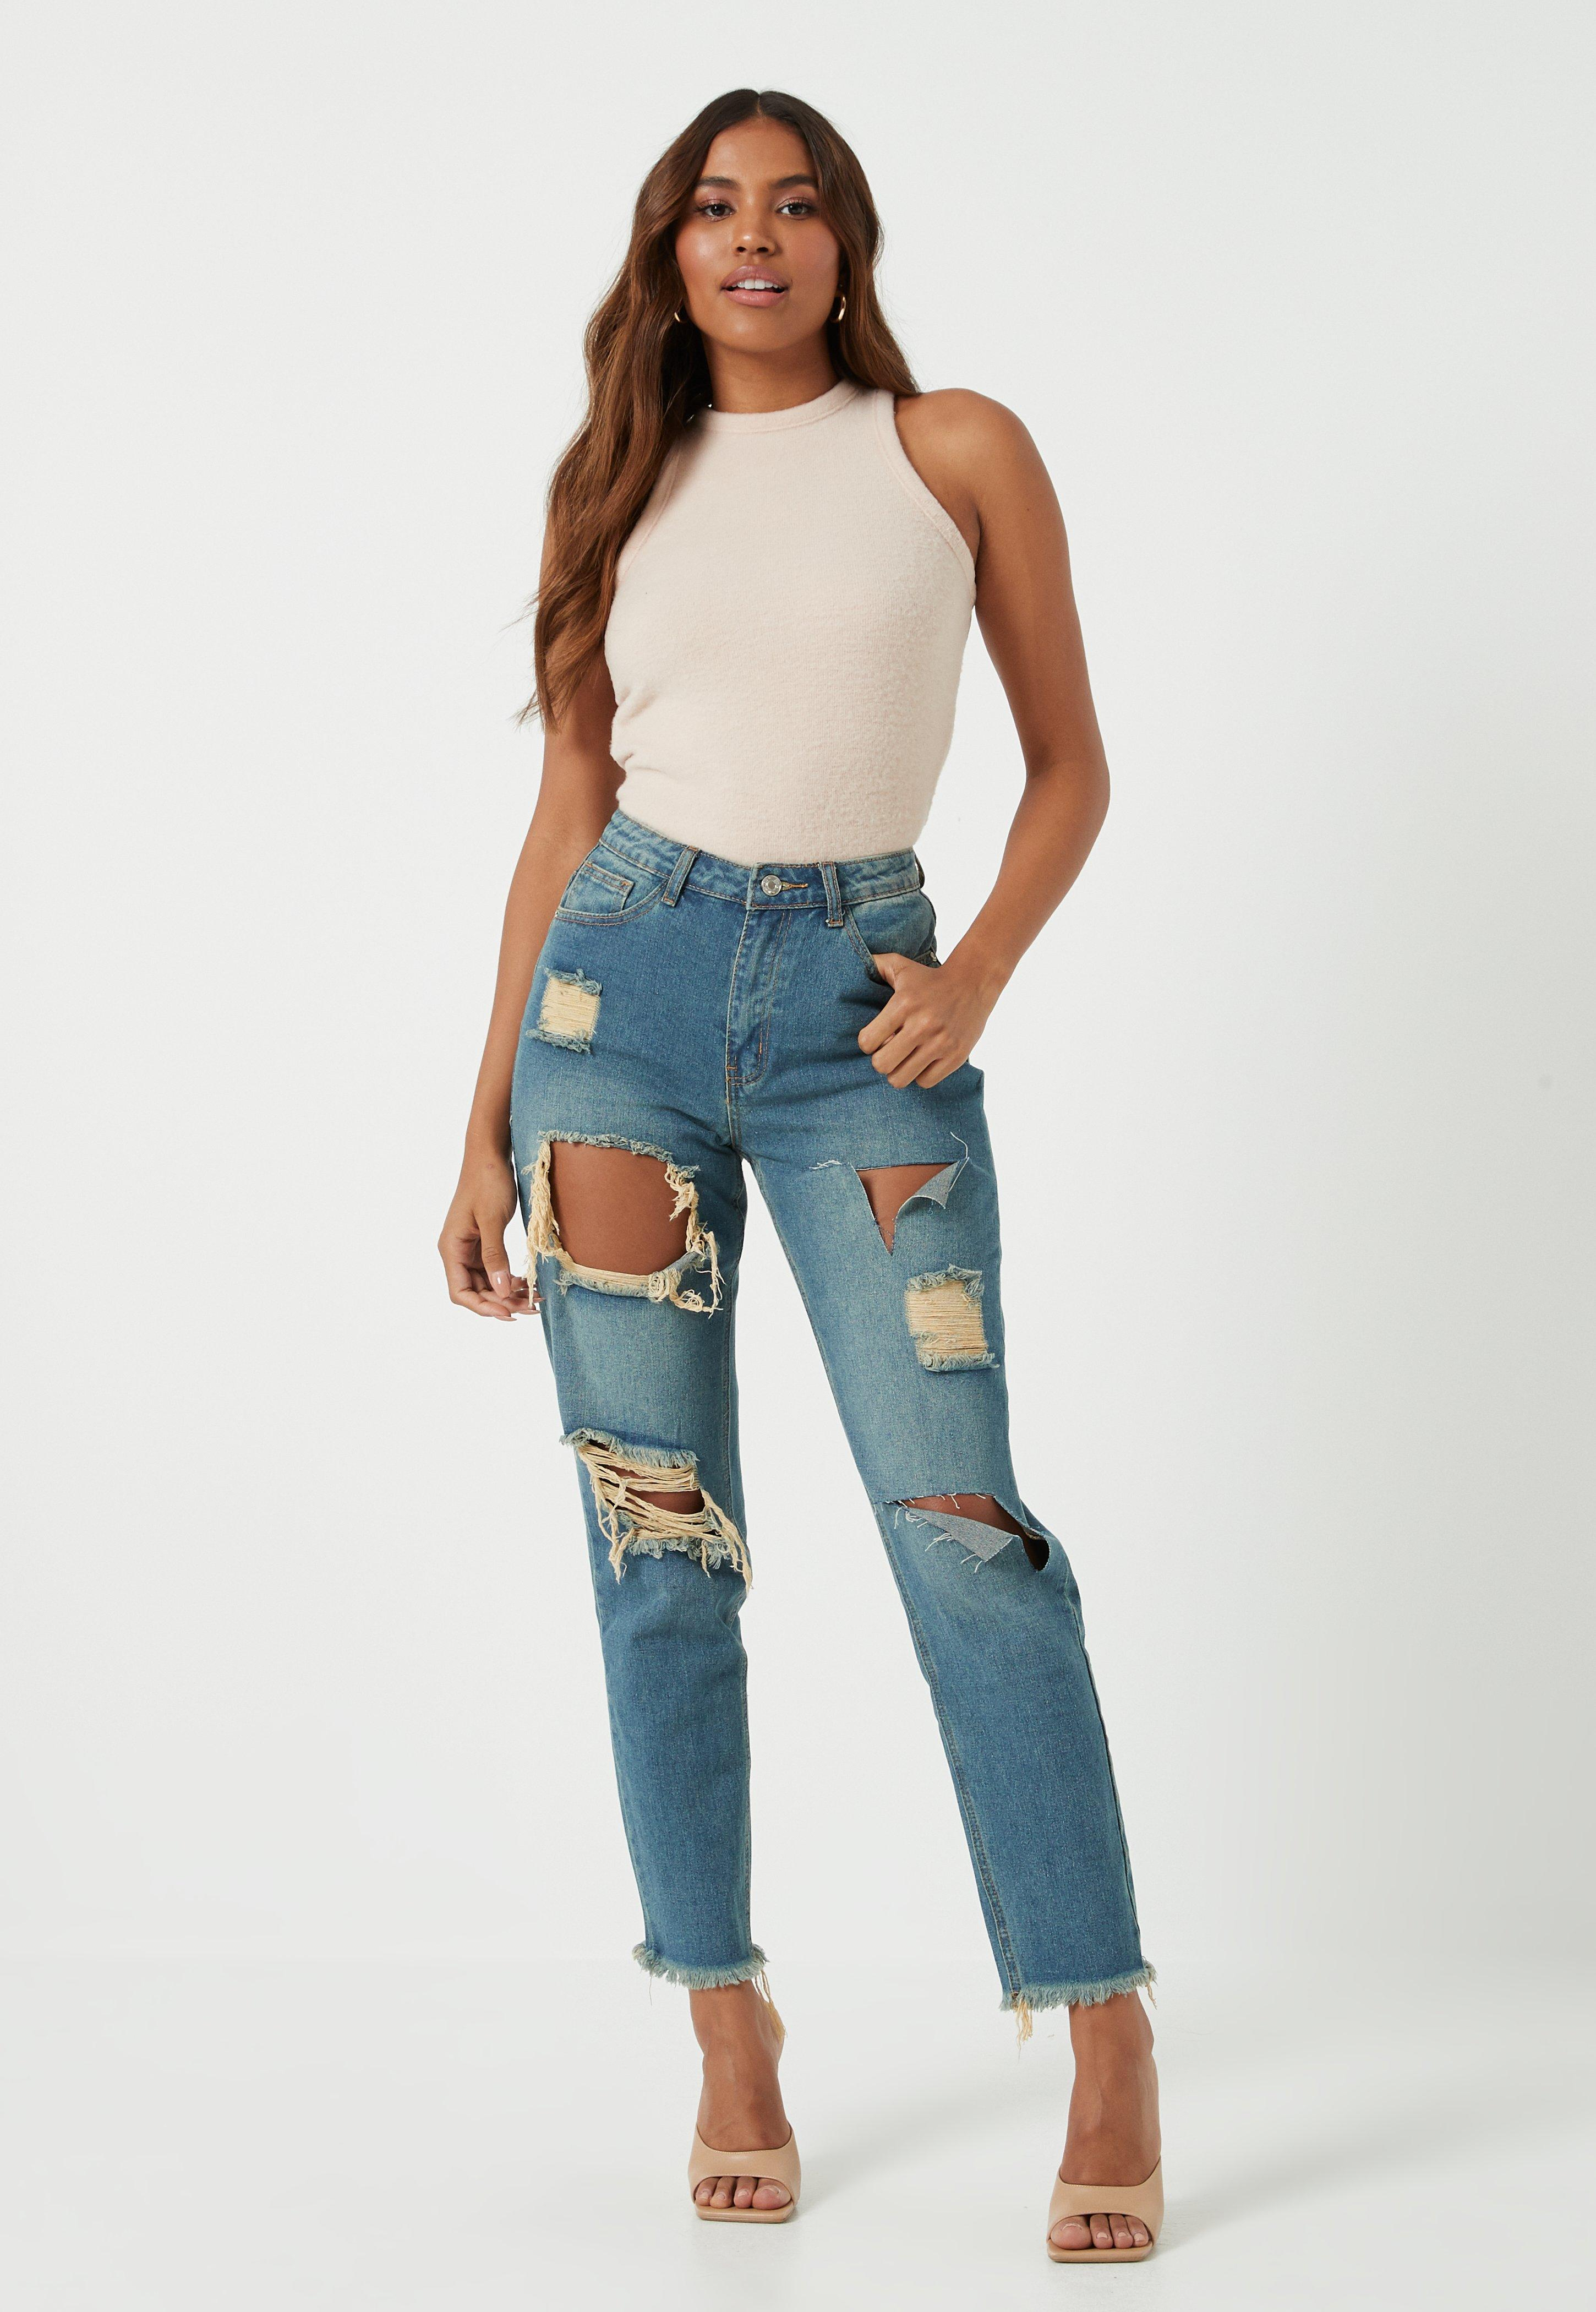 8b7a35ed872 Women's Jeans | Mom Jeans | Ripped Jeans | Missguided